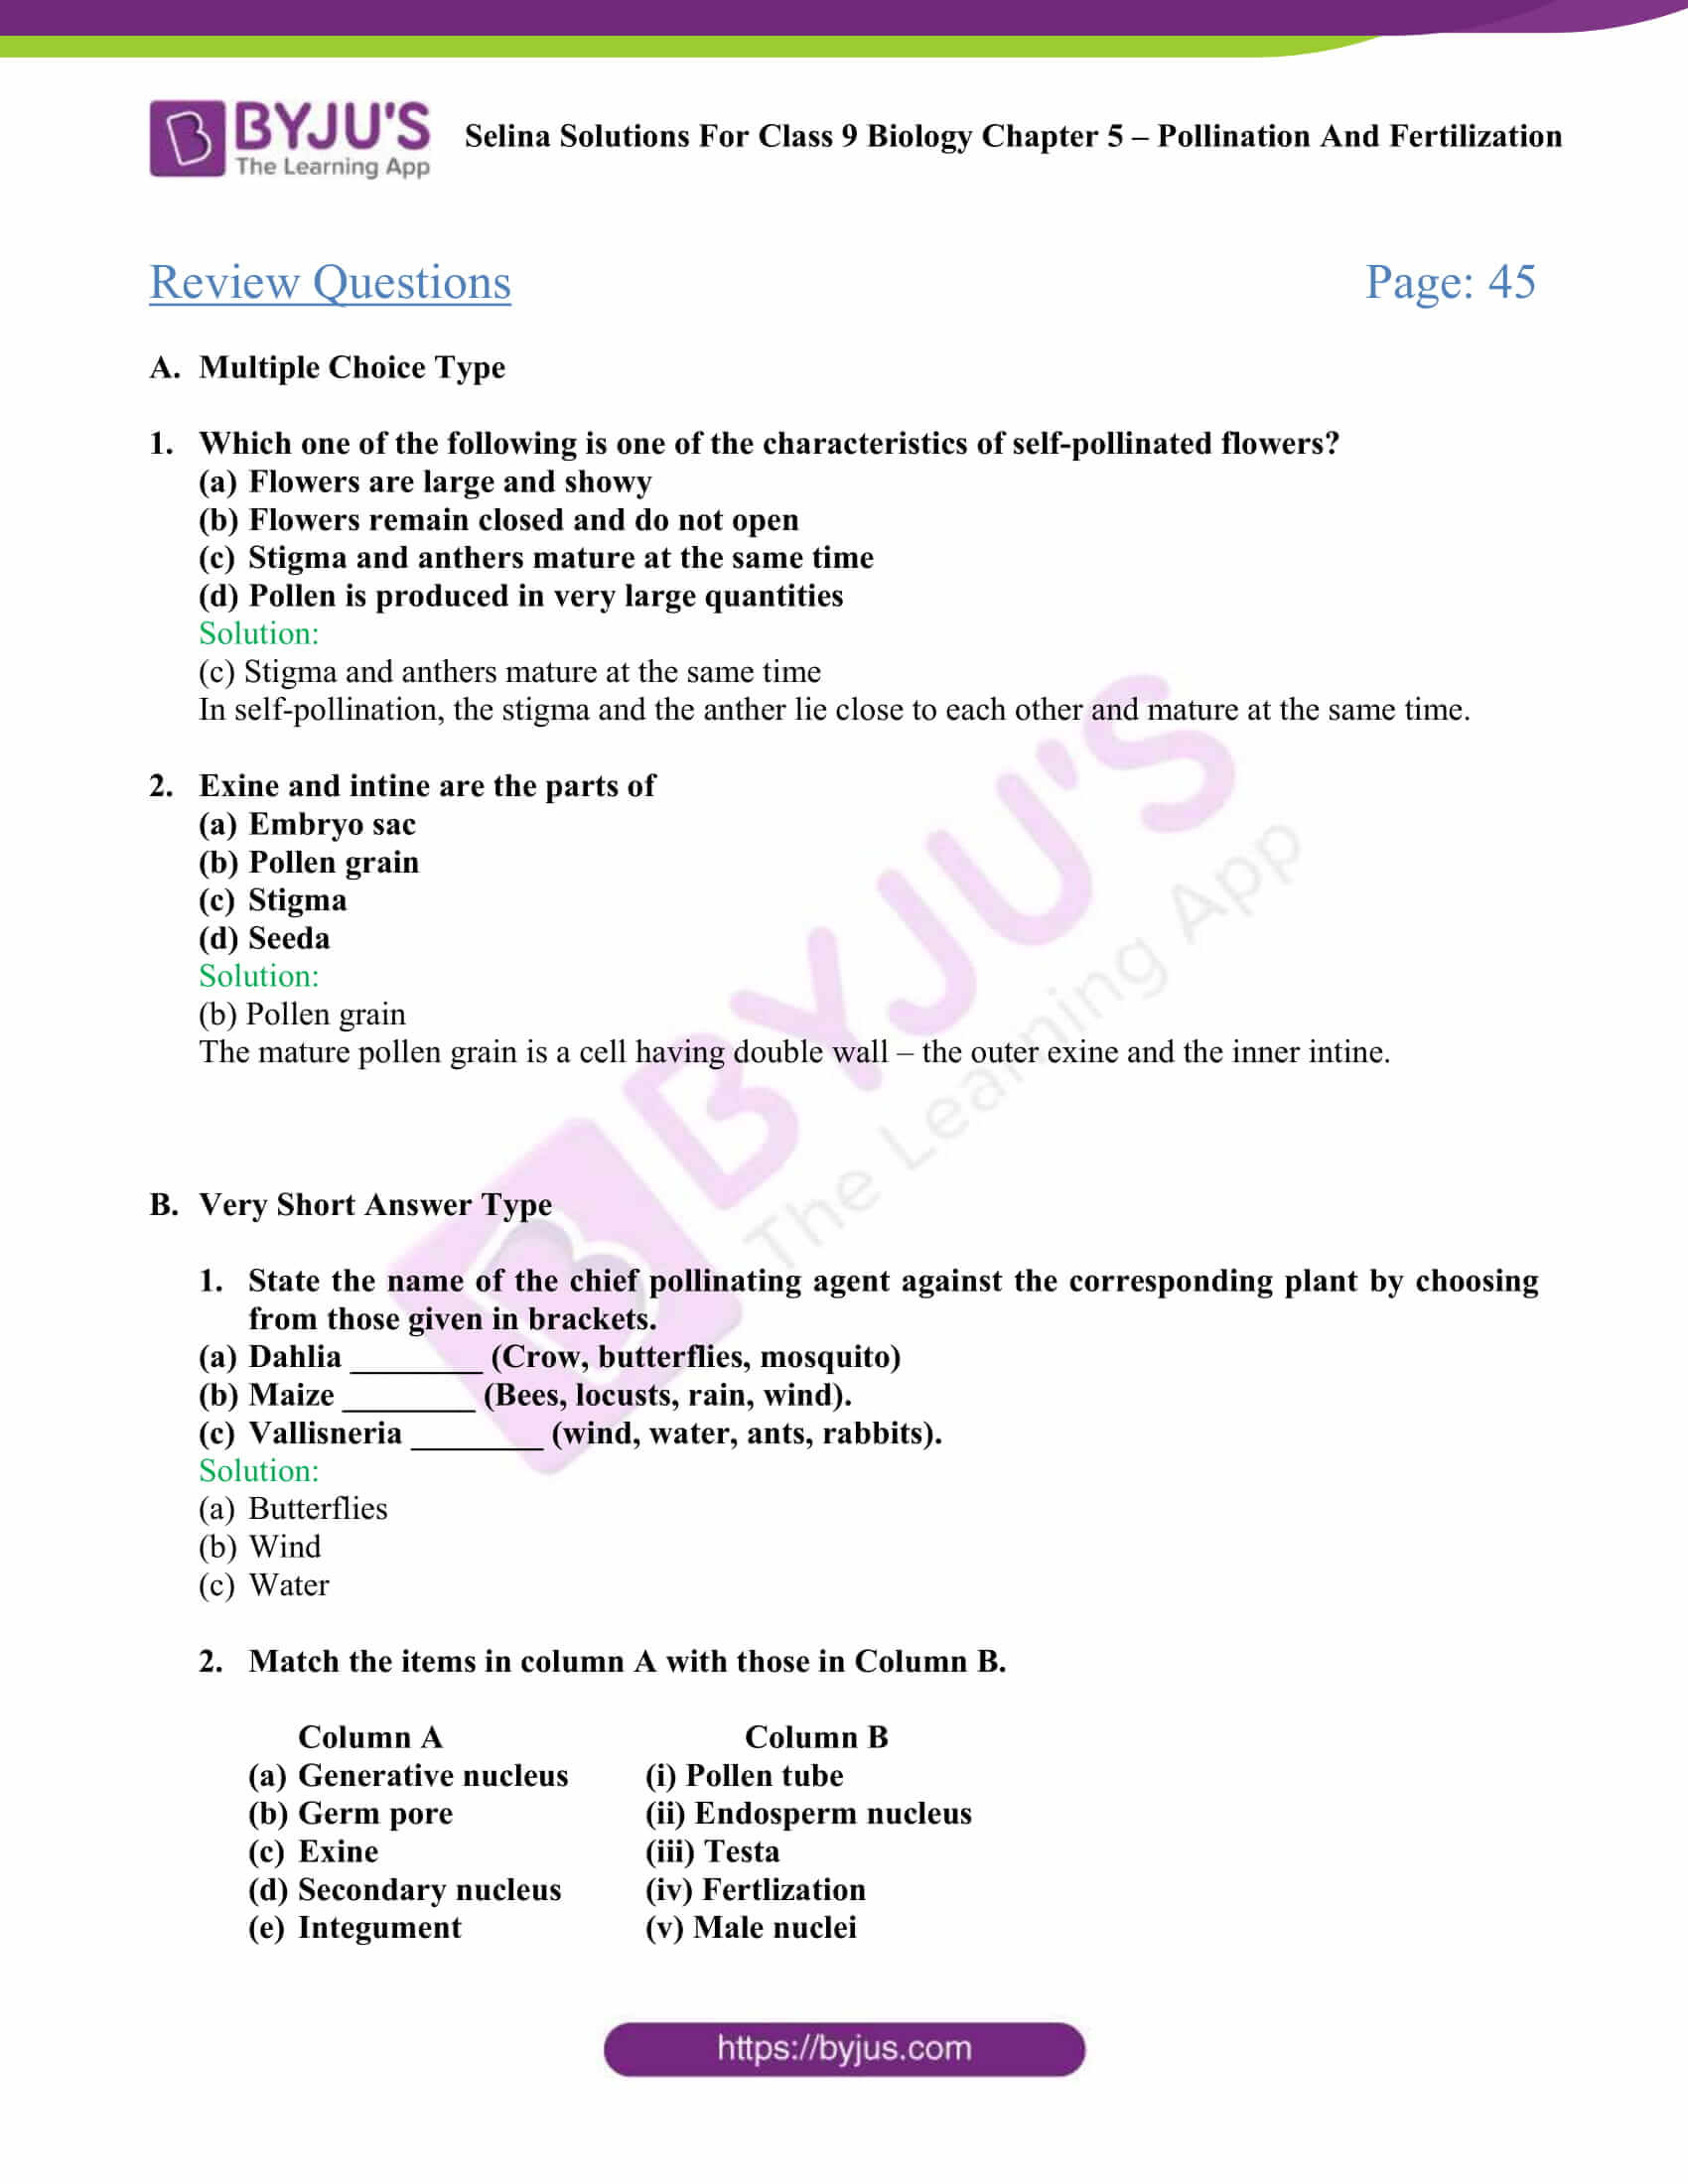 Selina Solutions For Class 9 Biology Chapter 5 Pollination And Fertilization part 03